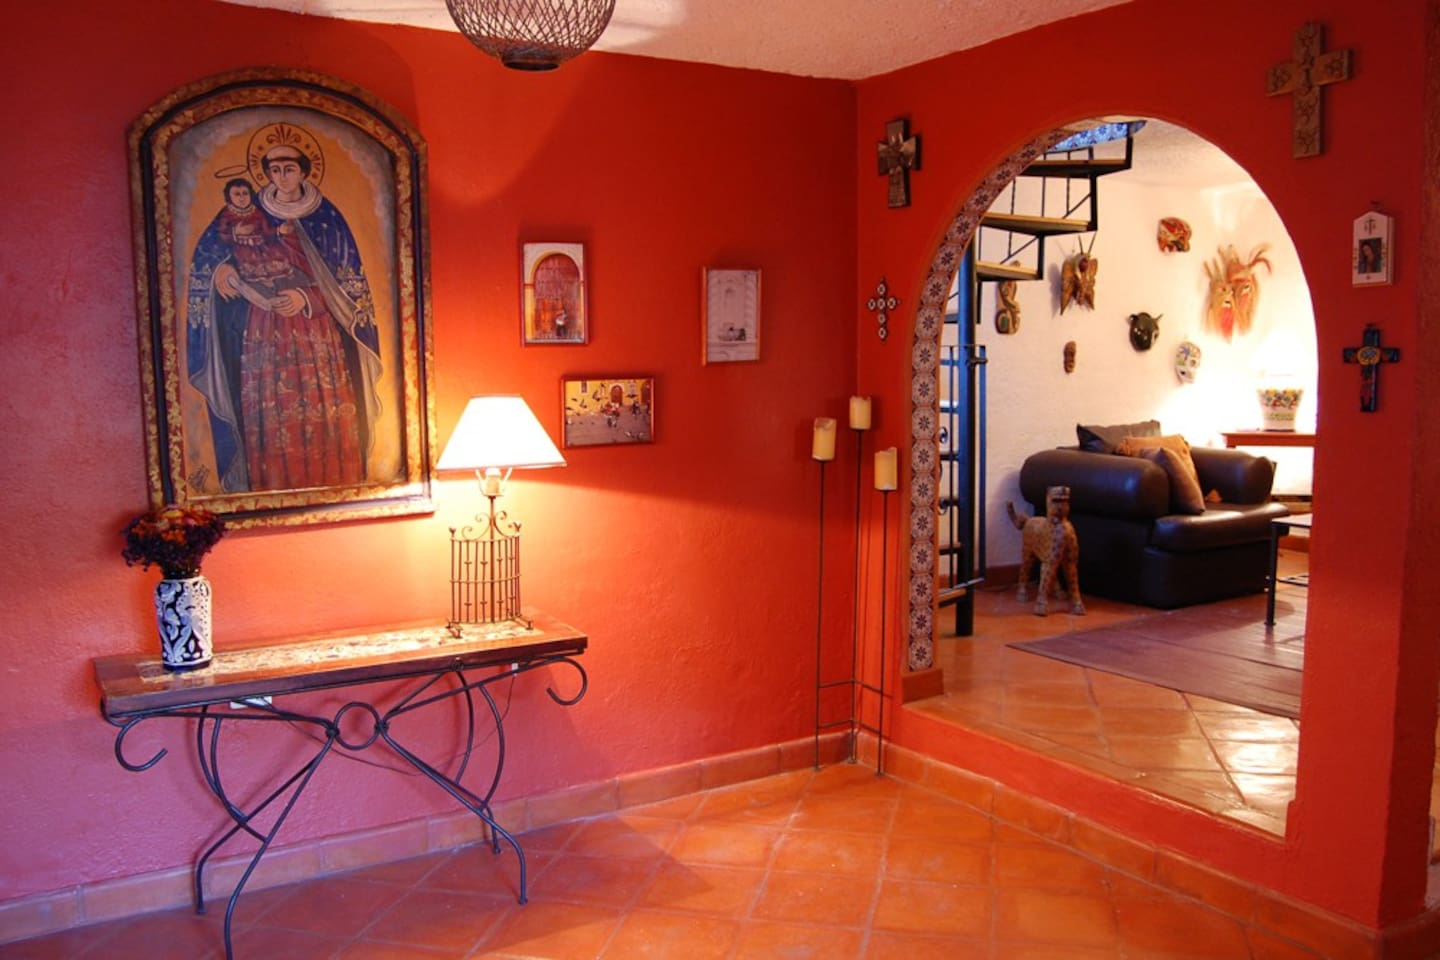 Foyer and living room with Mexican folk art and tiled archways